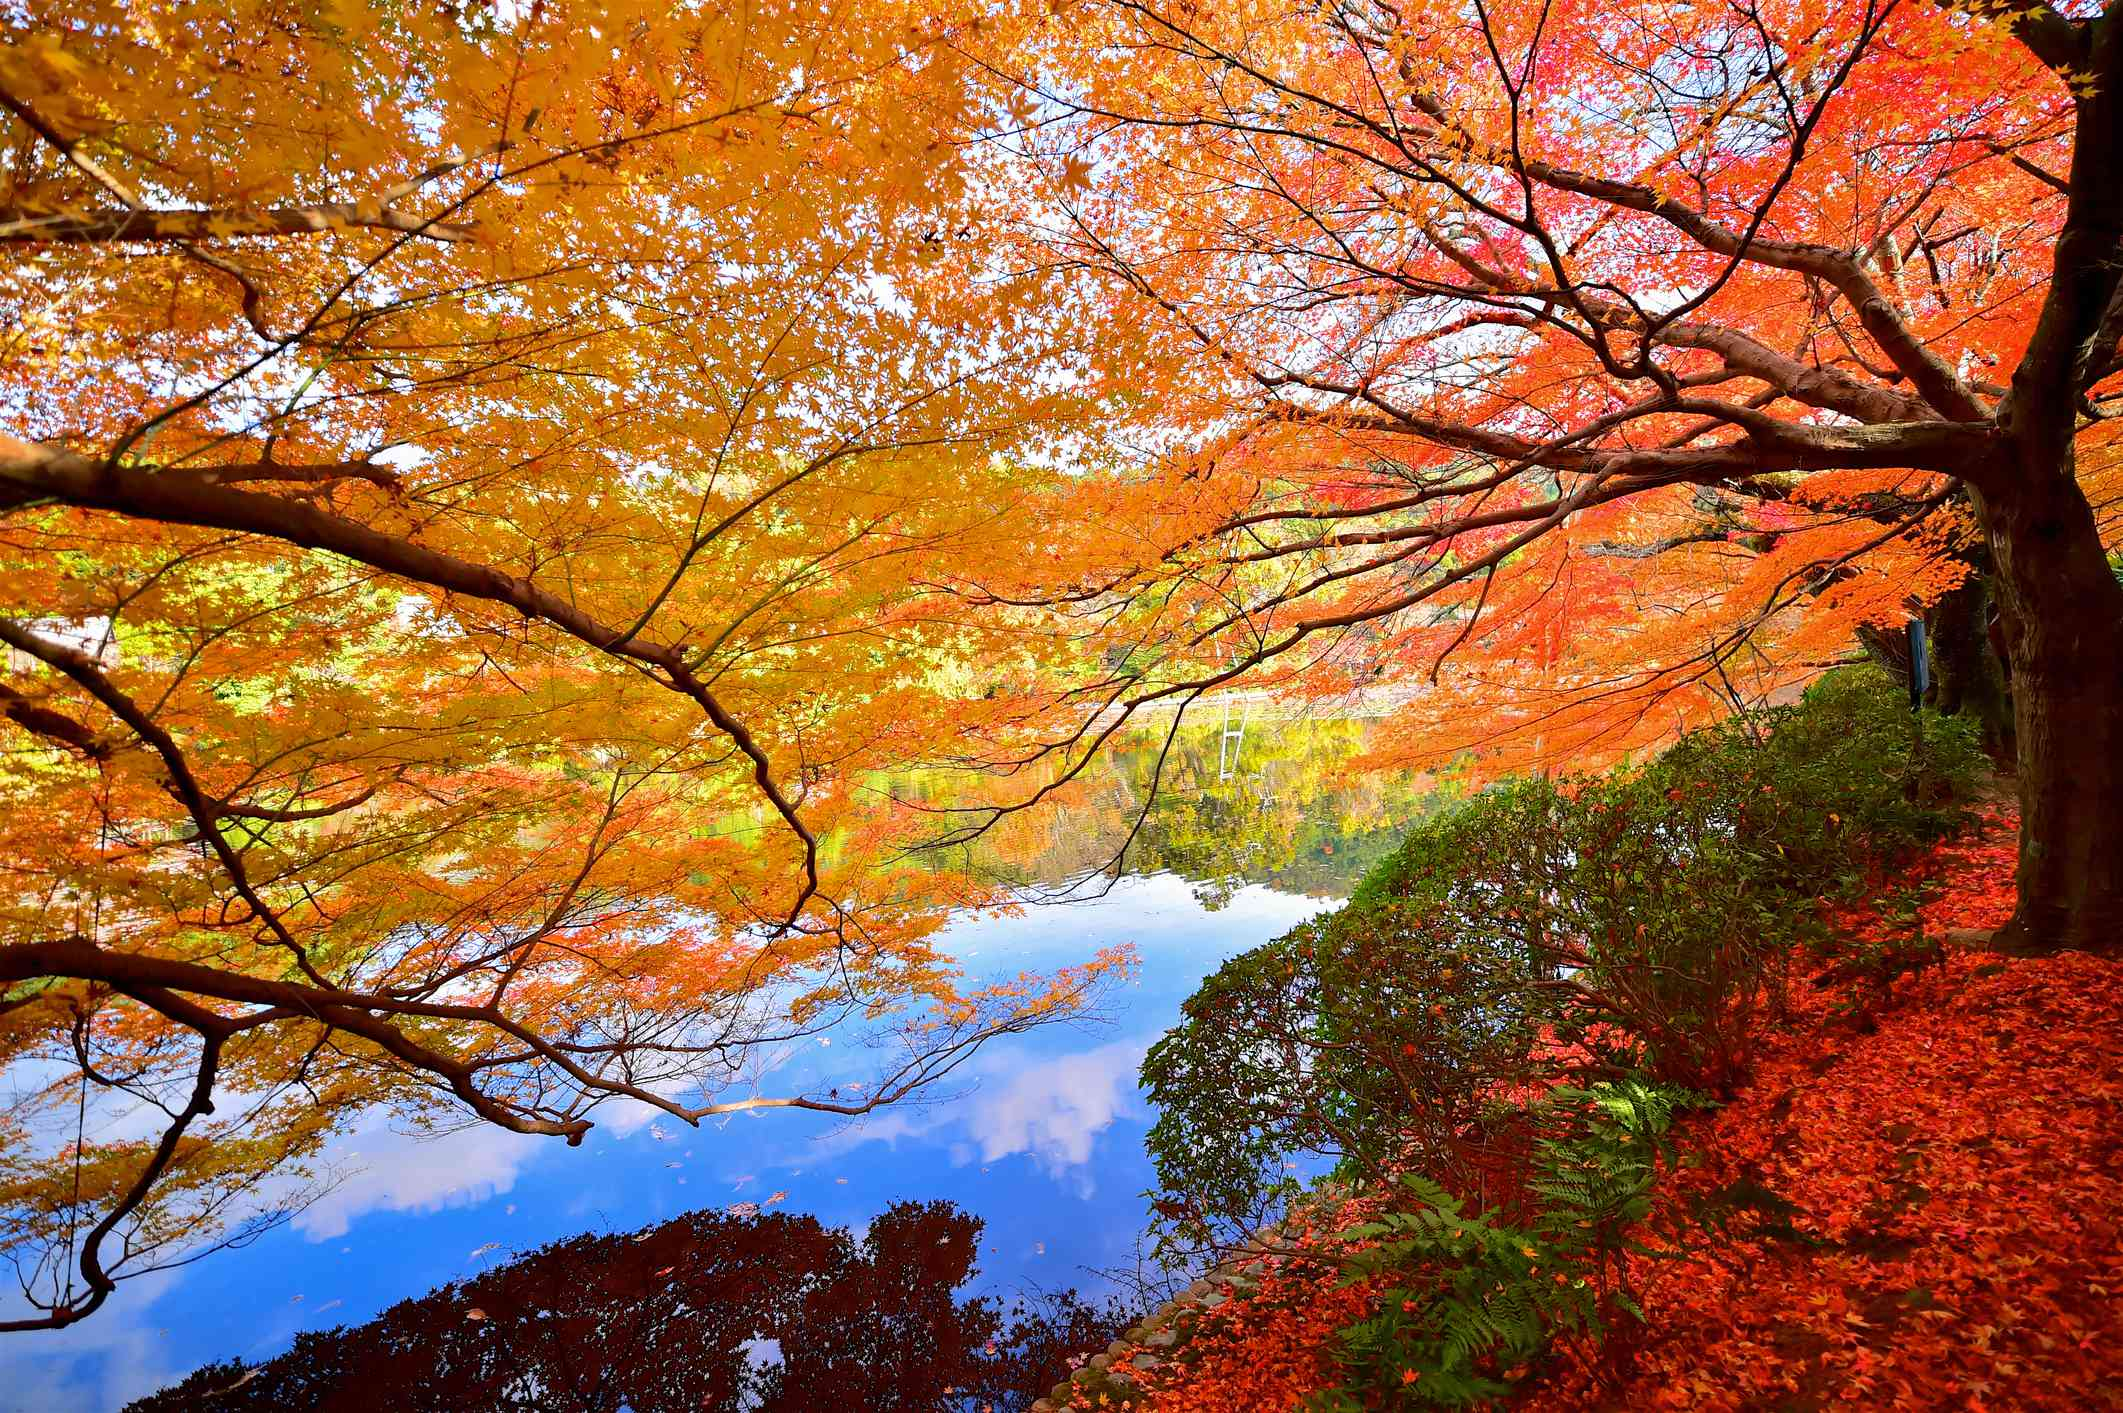 Delicate orange leaves of a tree leaning over a body of water with red flowers and green shrubs below reflected in the water